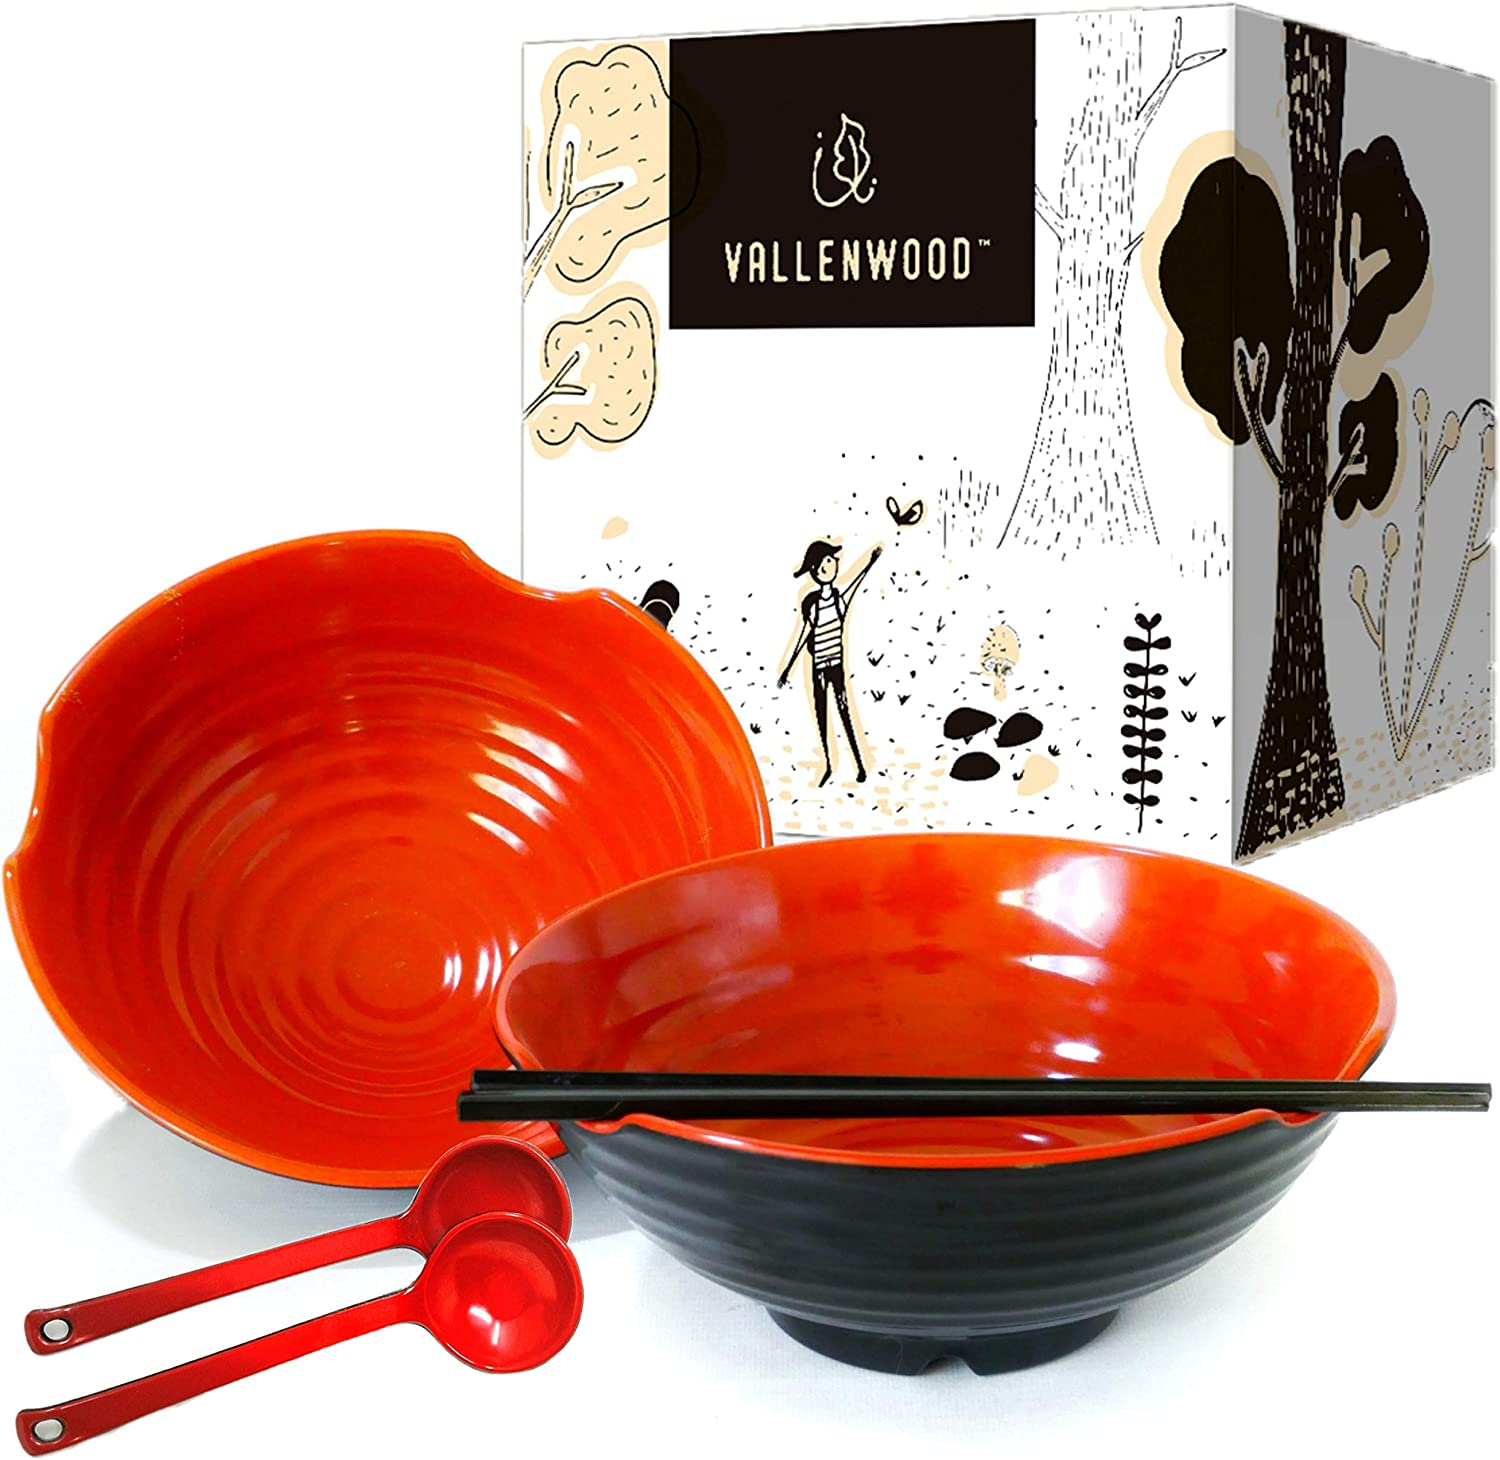 2 XL bowl set, 6 Pieces Ramen Bowl Set by Vallenwood. Asian Japanese soup with Spoons and Chopsticks. Restaurant Quality Melamine, Large 52 oz for Noodles, Pho, Udon, Thai, Chinese dinnerware. (2)